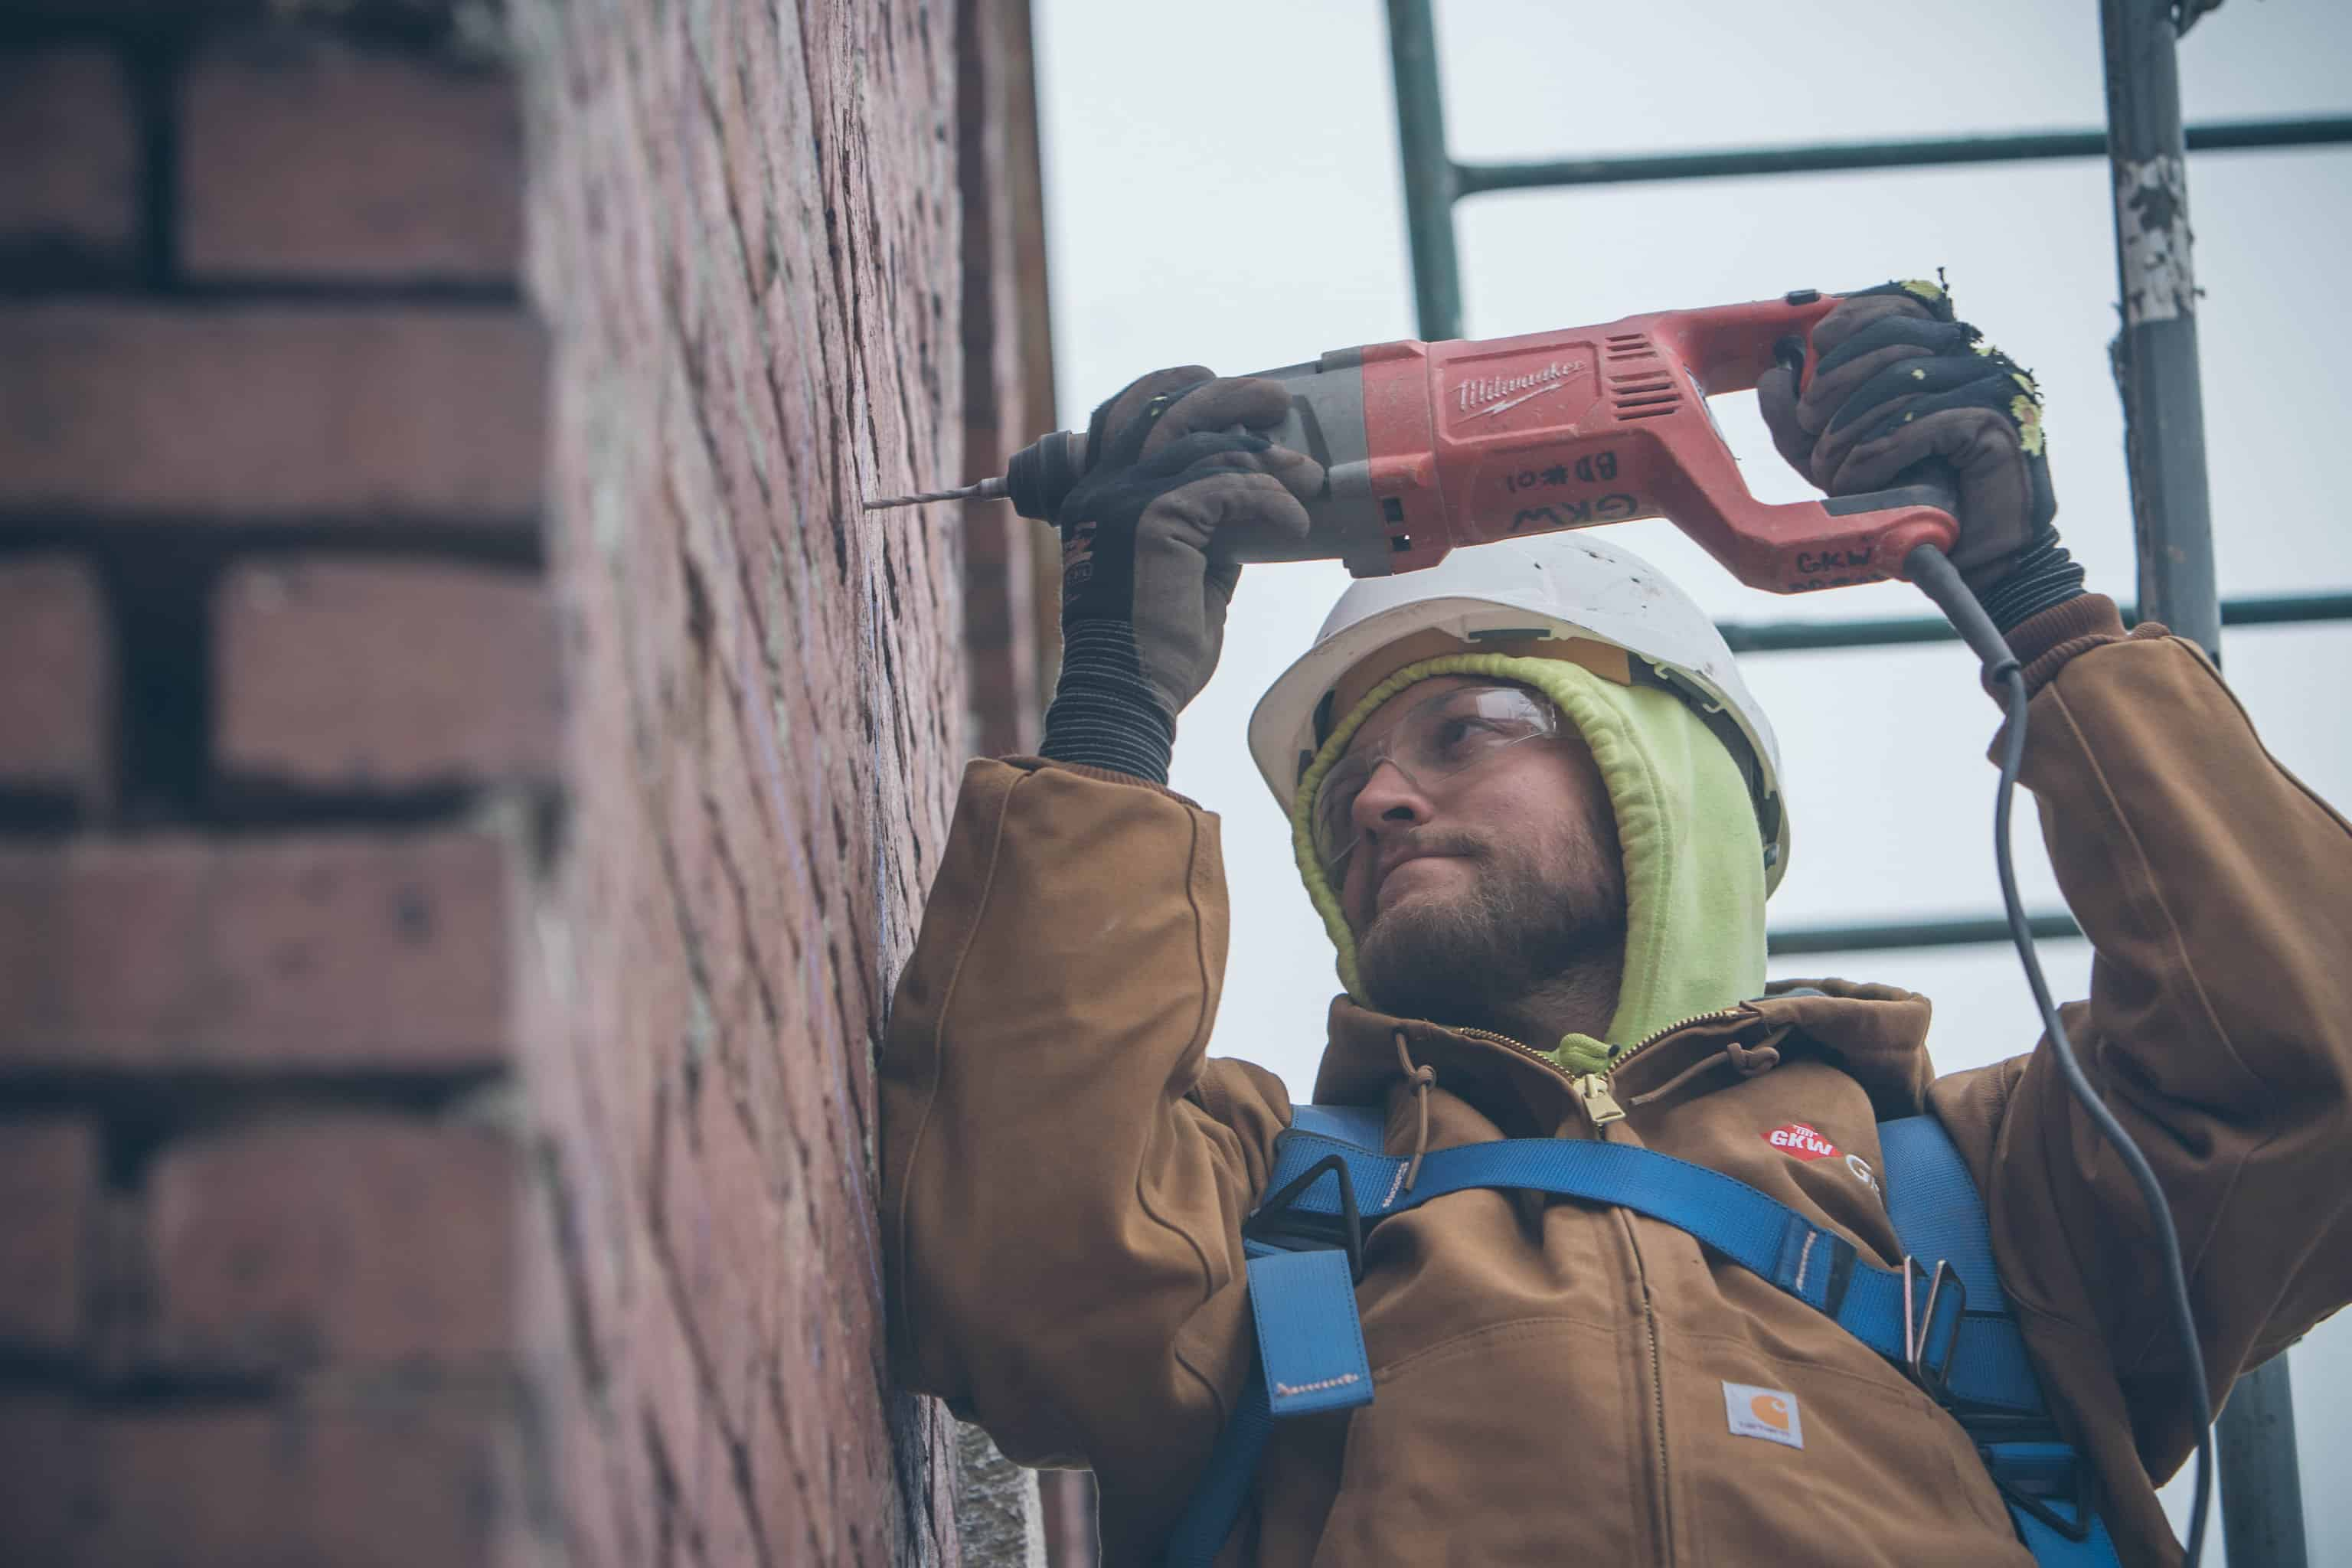 Around 2200 anchors were installed into the exterior facade's mortar joints by GKW Restoration crews.